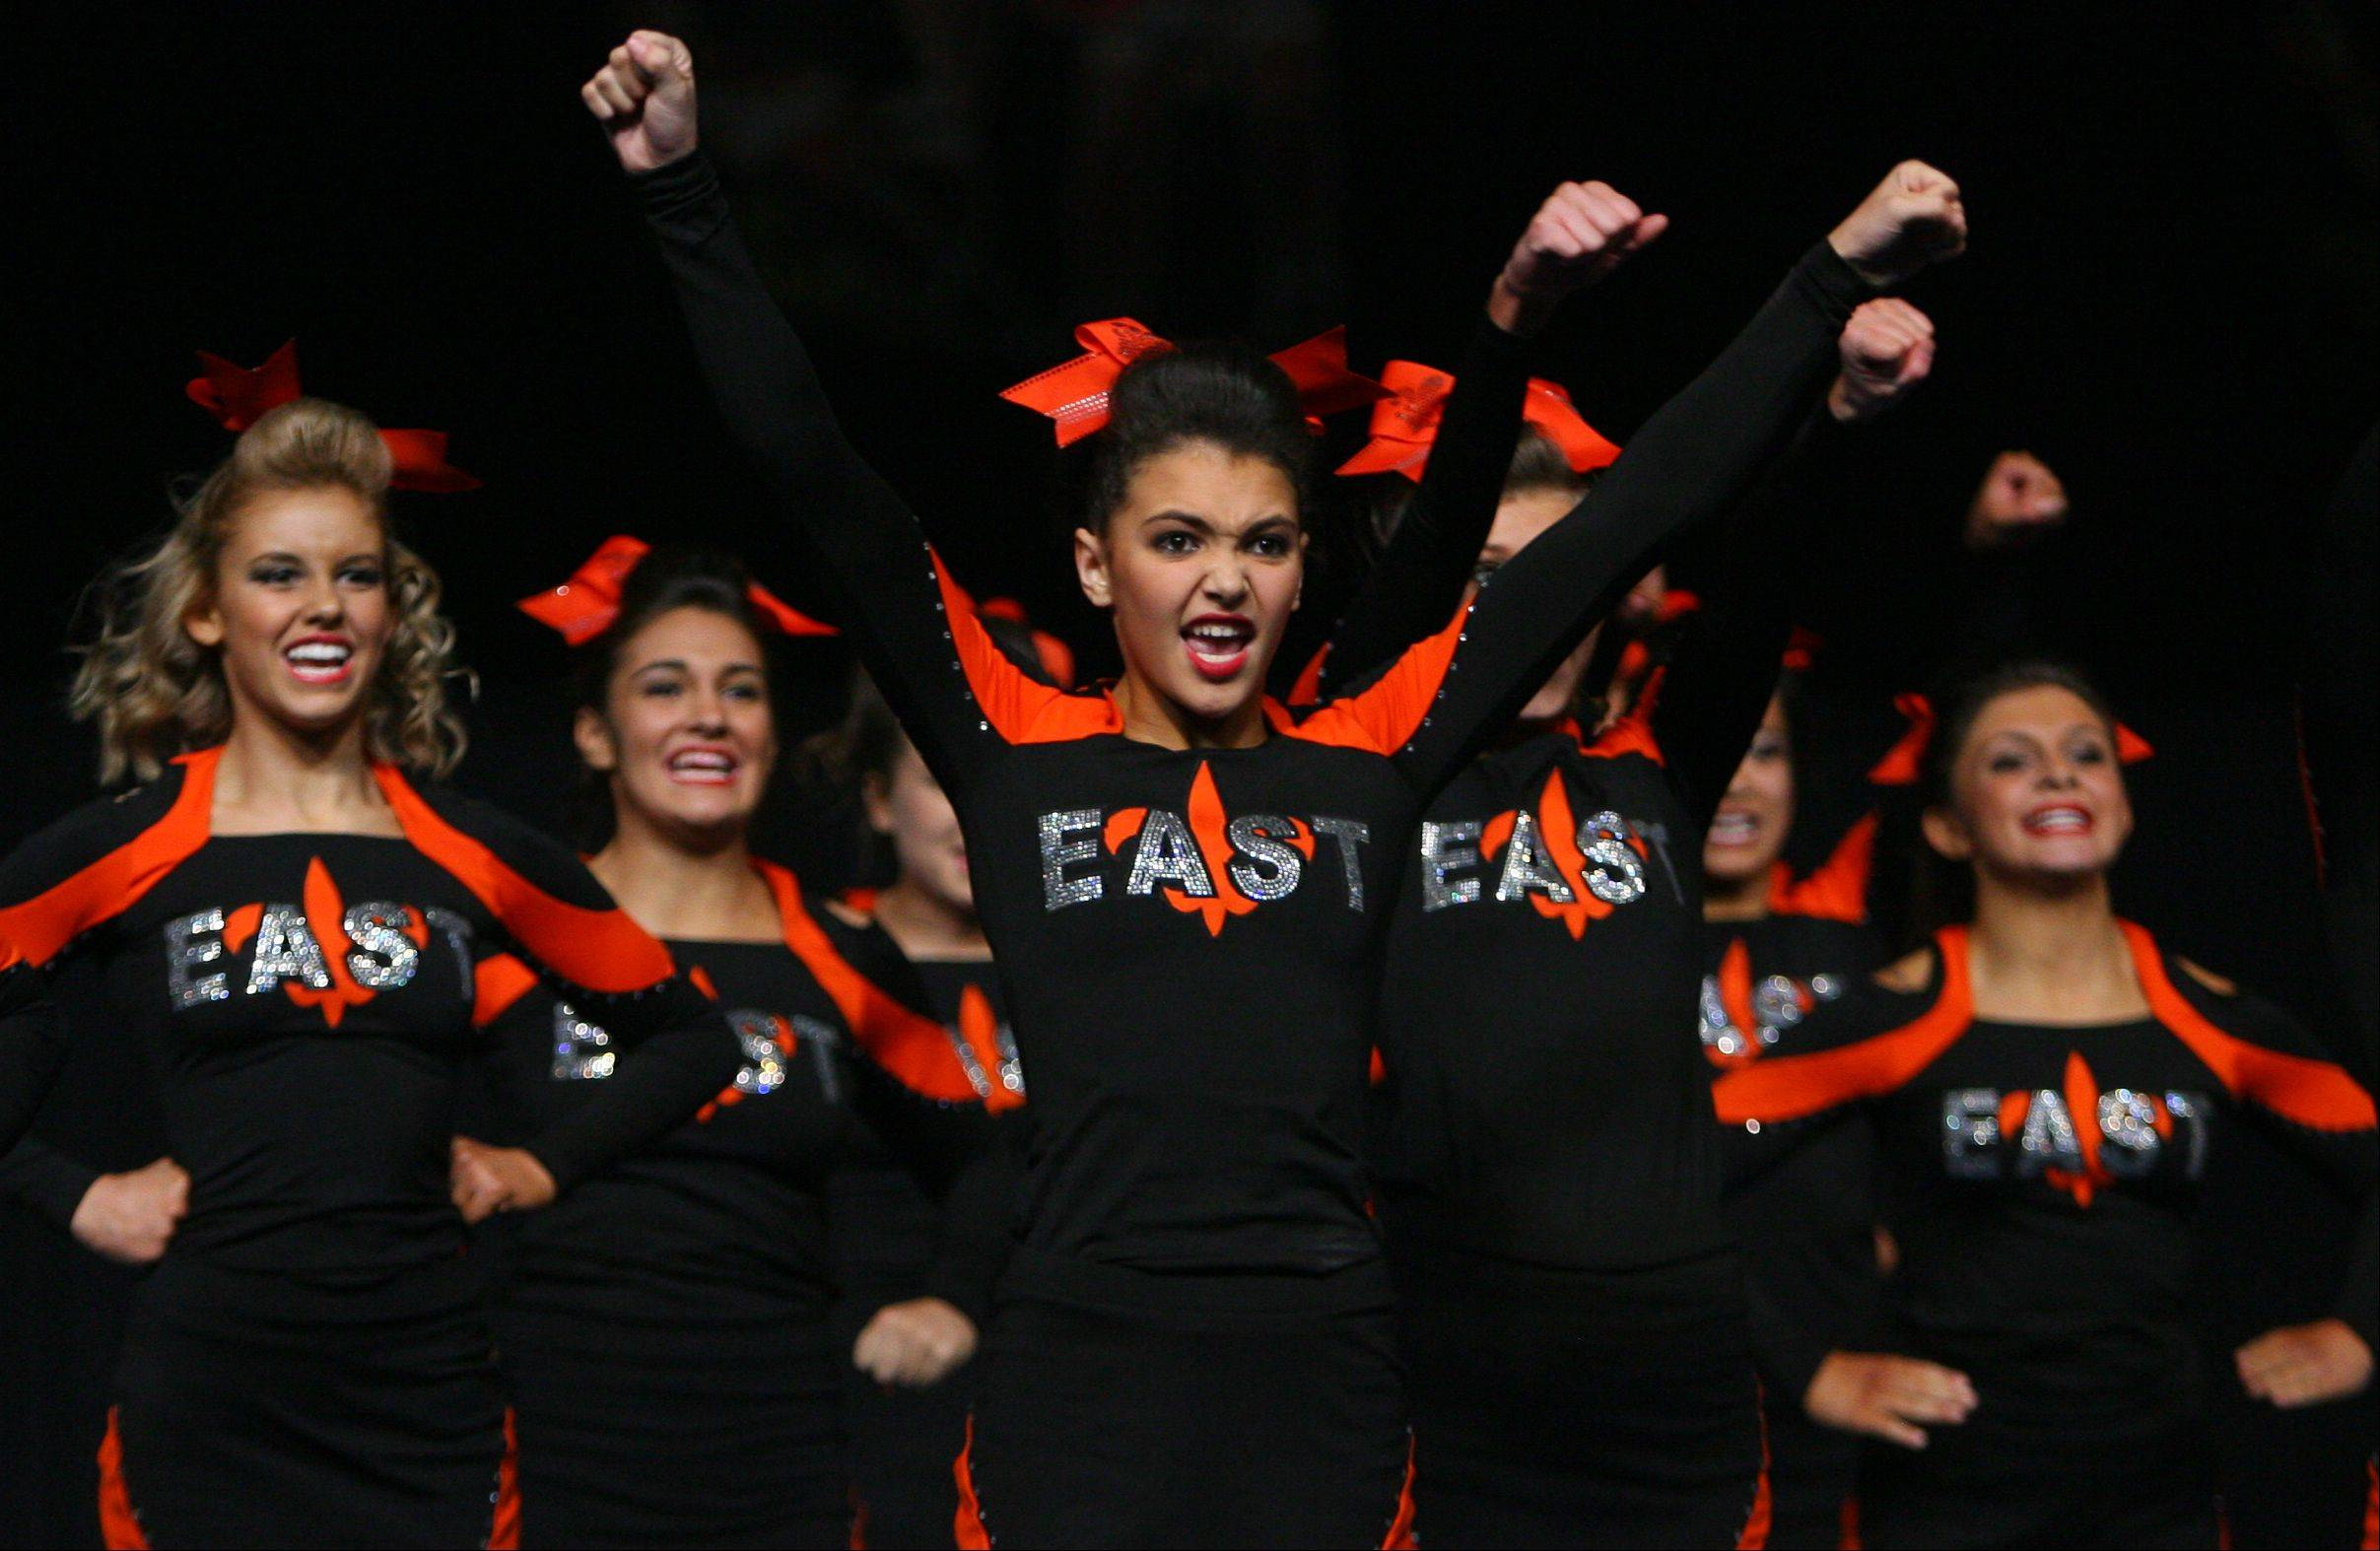 St. Charles East High School tied for seventh place in the competitive cheerleading prelims on Friday and will compete for the large school state title on Saturday.